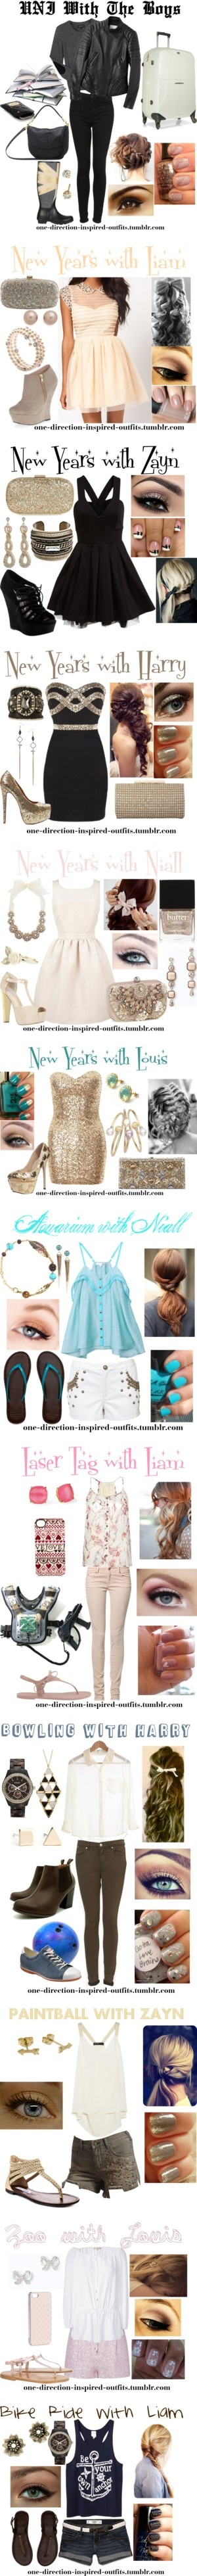 """One Direction Inspired Outfits and Imagines"" by one-direction-inspired-outfits ❤ liked on Polyvore"